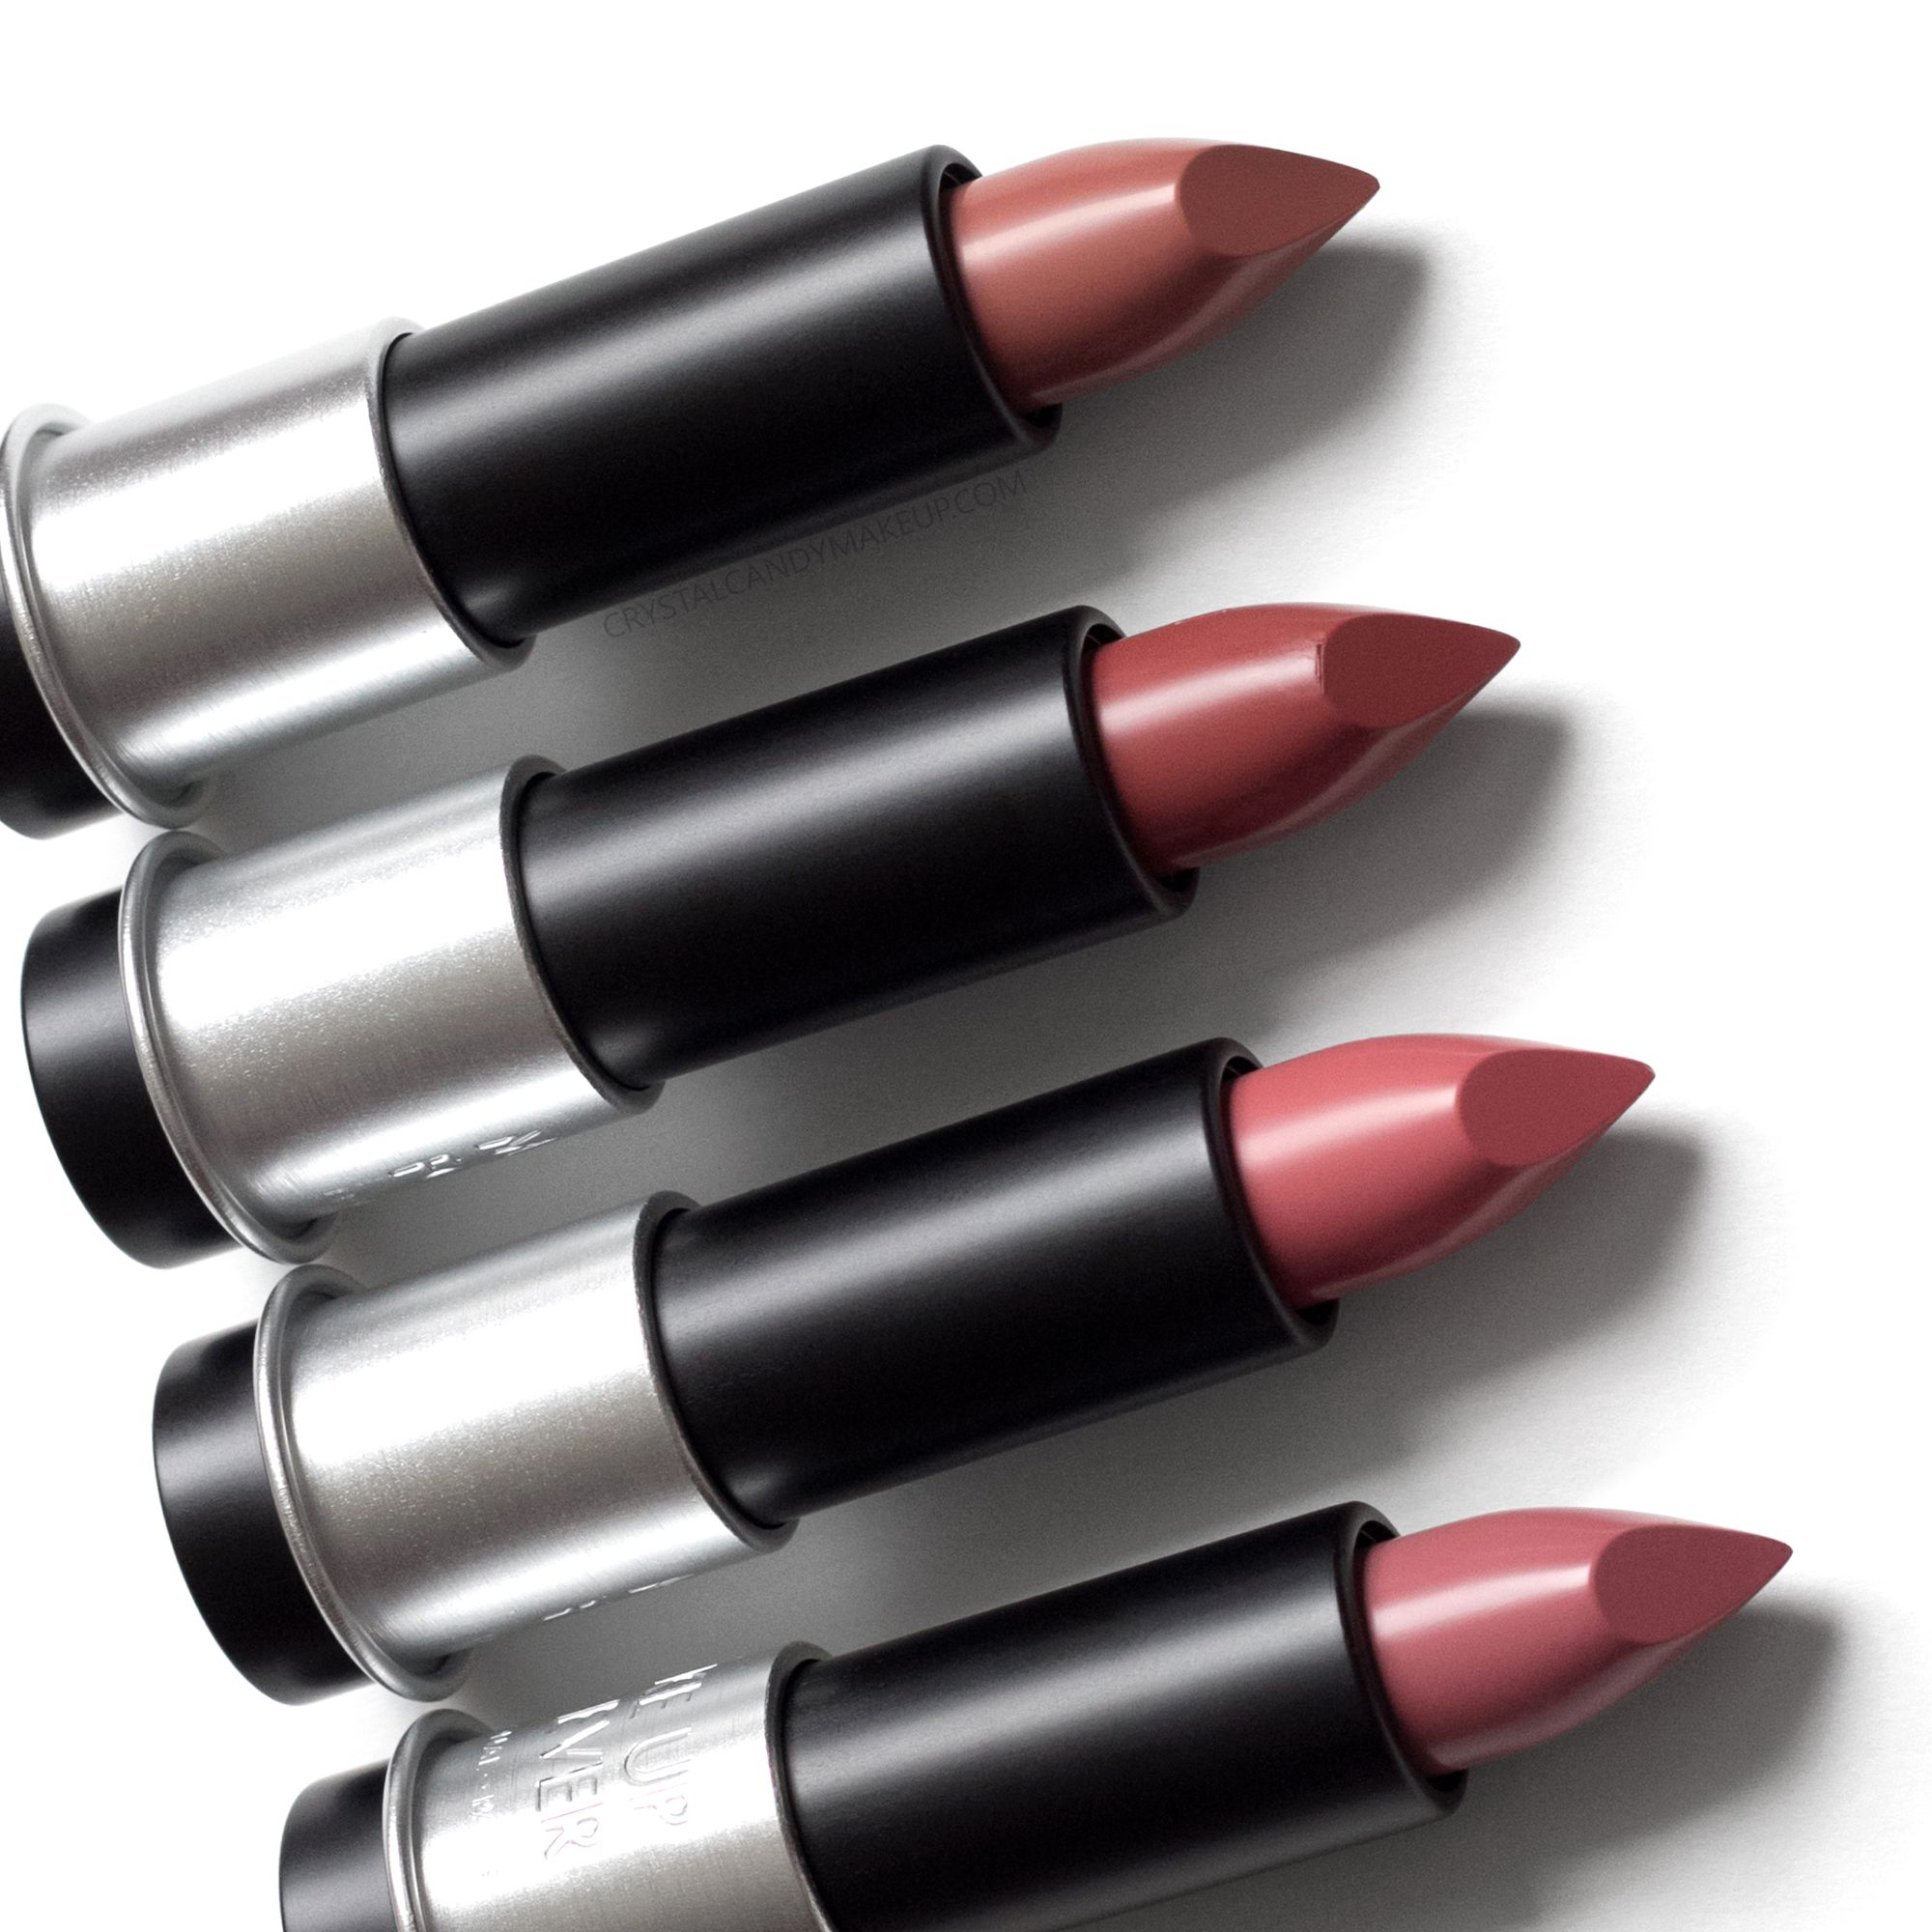 Make Up For Ever Artist Rouge Creme lipsticks, review and